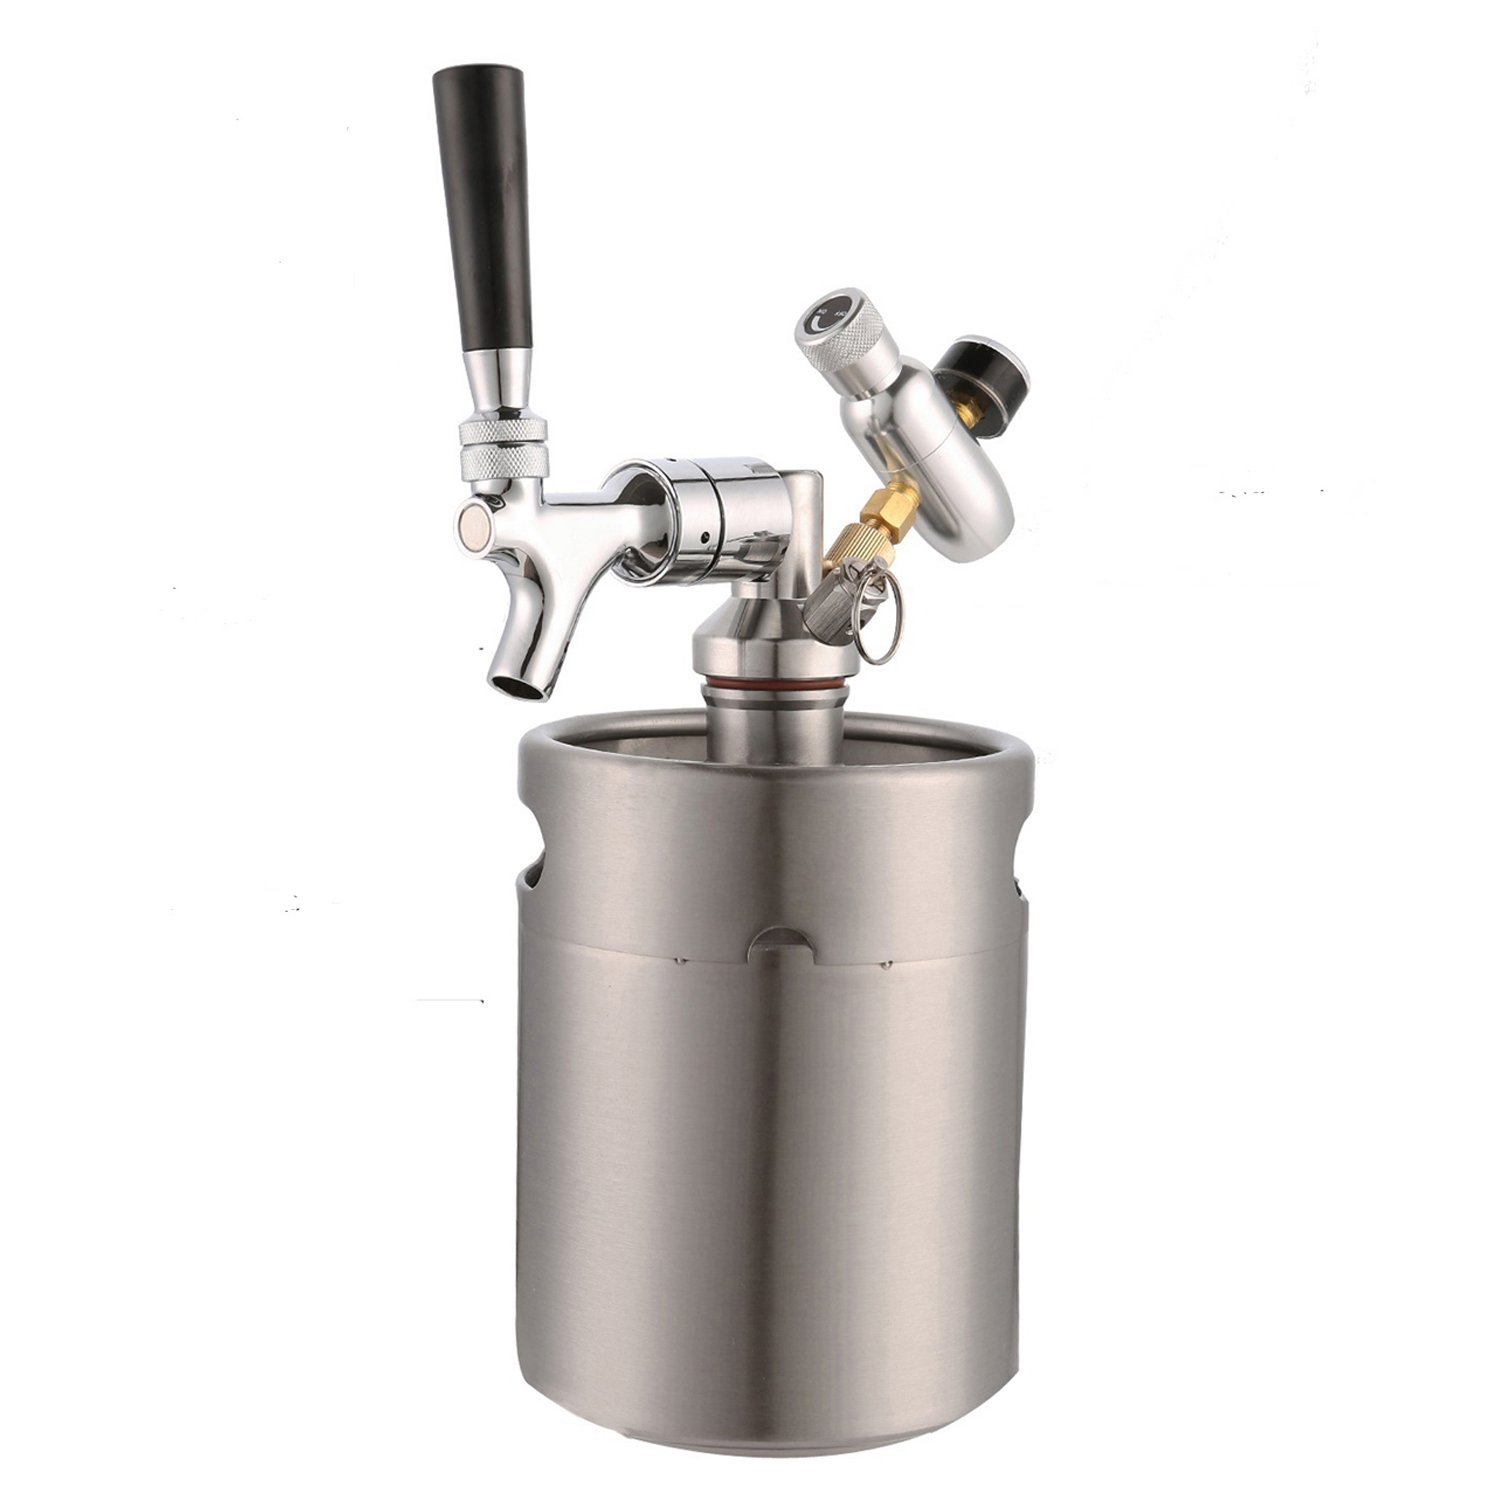 HAN-MM 64 Ounce Homebrew Keg System Kit for Home Brew Beer - with a HAN-MM Beer Dispensor, HAN-MM Mini CO2 Regulator and a HAN-MM 64 Ounce Stainless Steel Keg